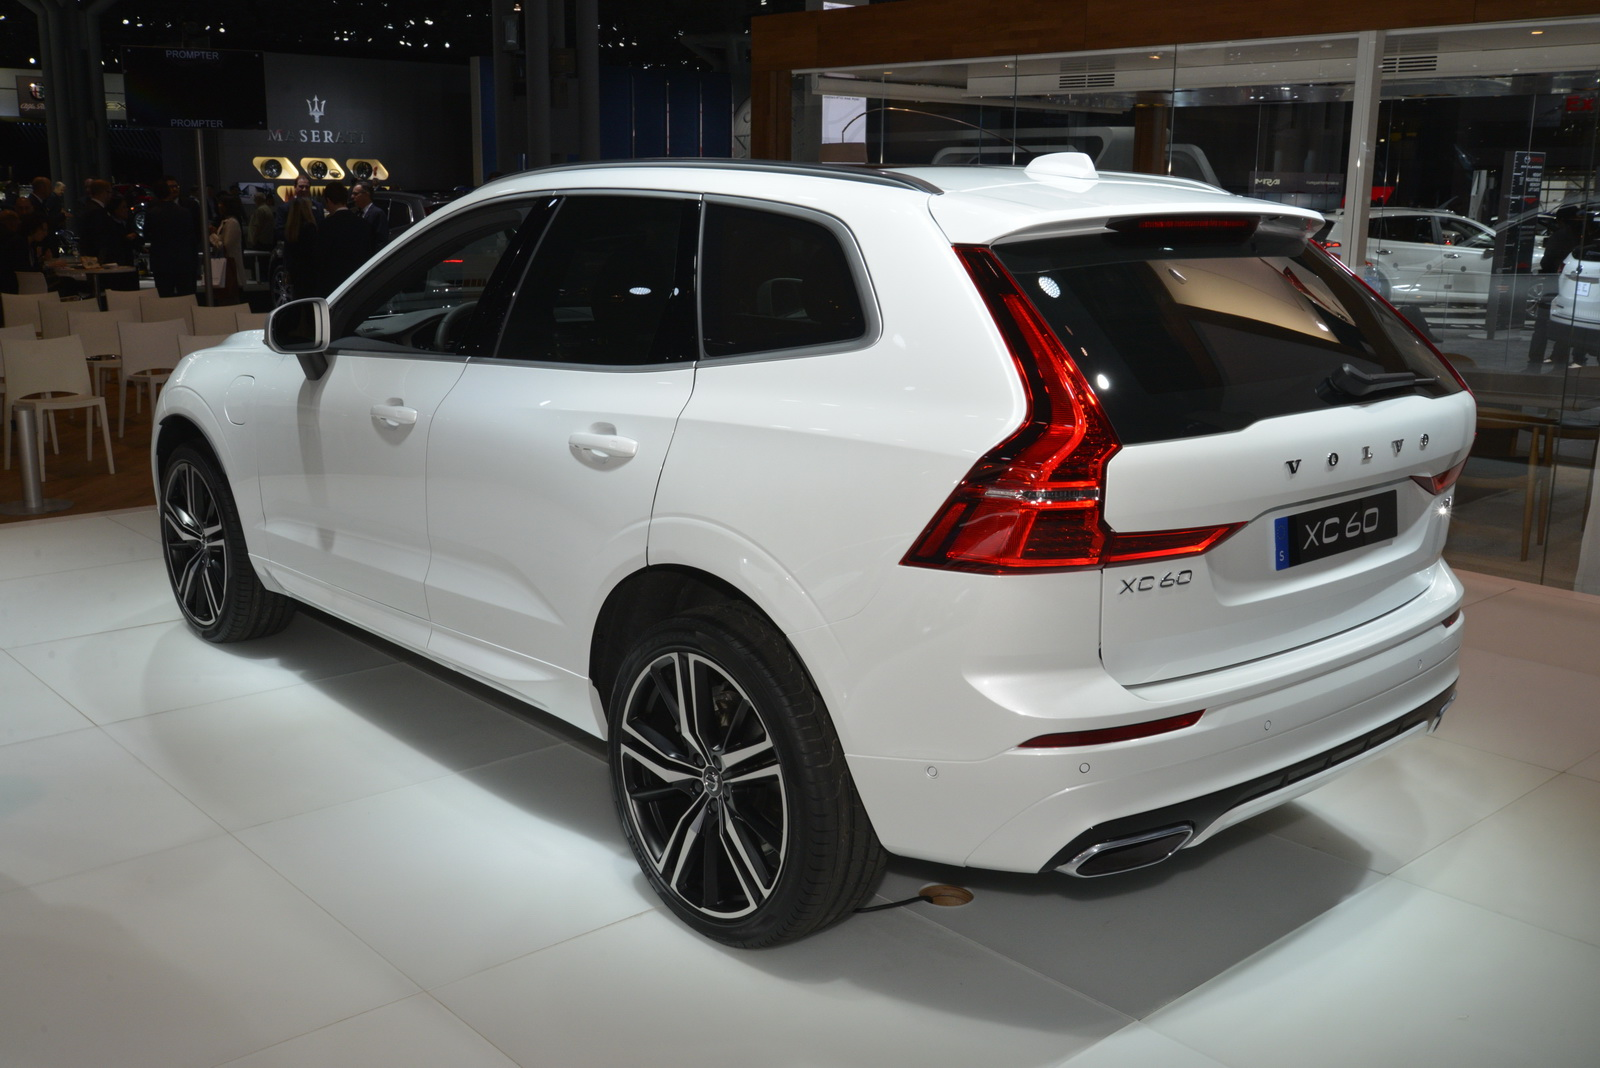 ny show 2018 volvo xc60 looks doomed for success carscoops. Black Bedroom Furniture Sets. Home Design Ideas